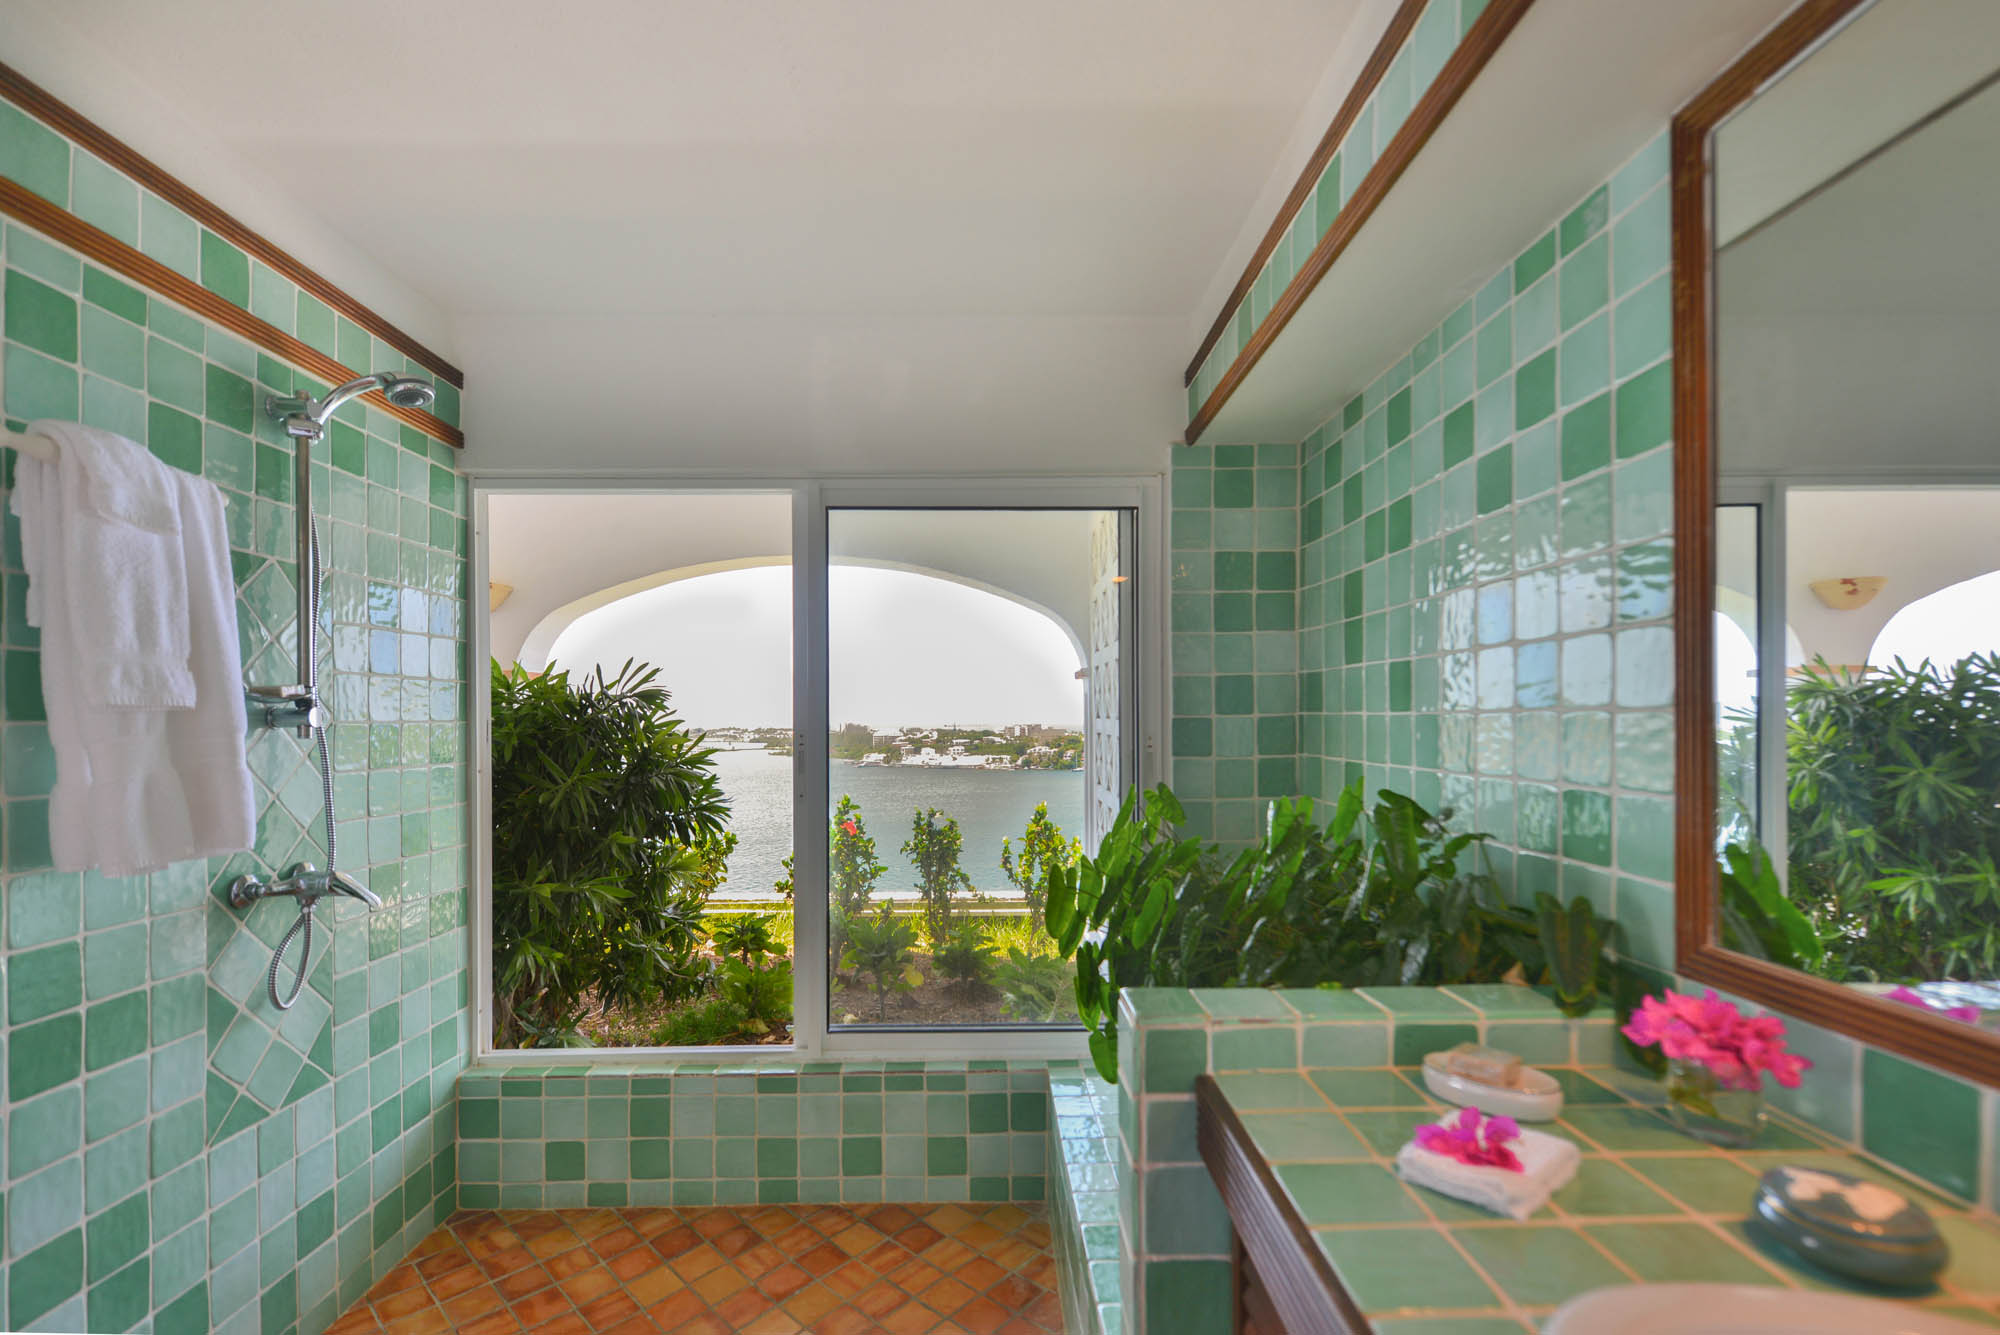 The colourful design and the tropical garden is a perfect combination for a tropical feeling in your private bathroom.